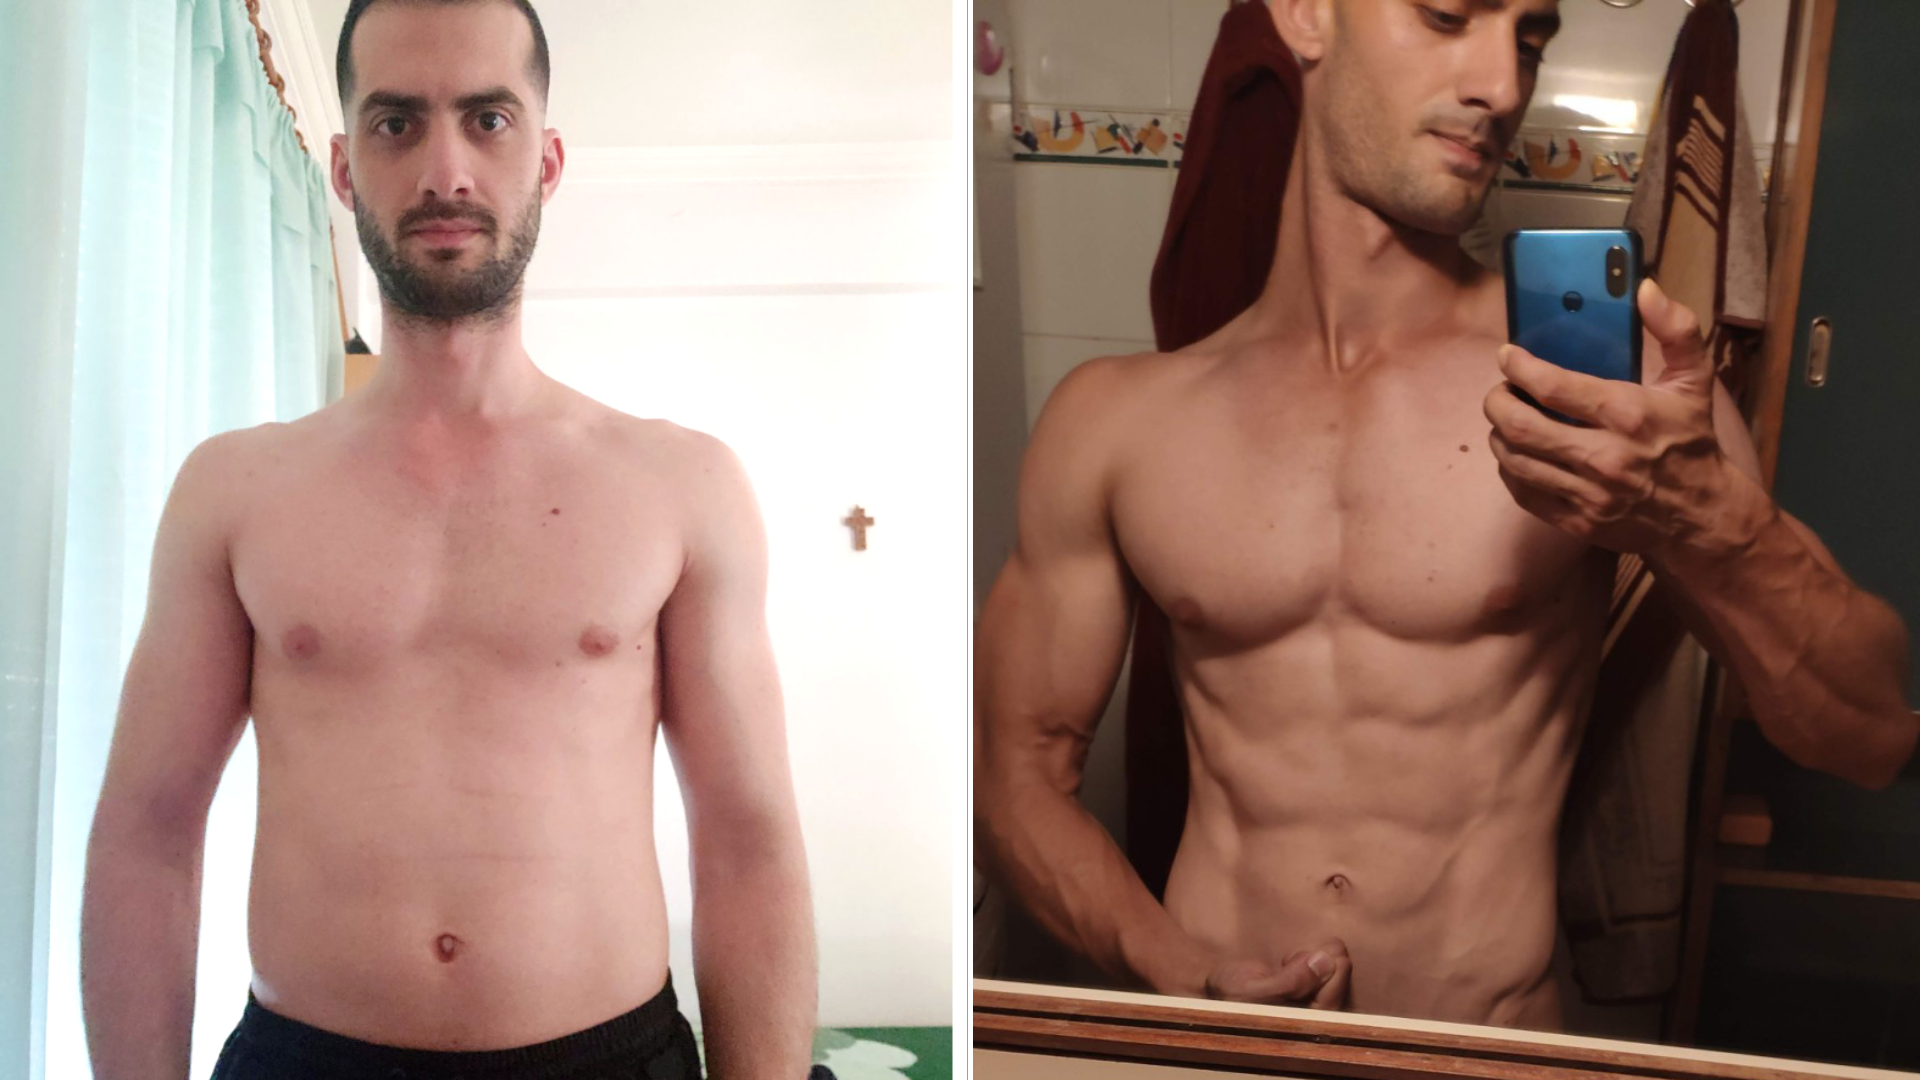 [Image] Hello guys, since 2020 is almost coming to its end I would like to share with you my transformation during this year.